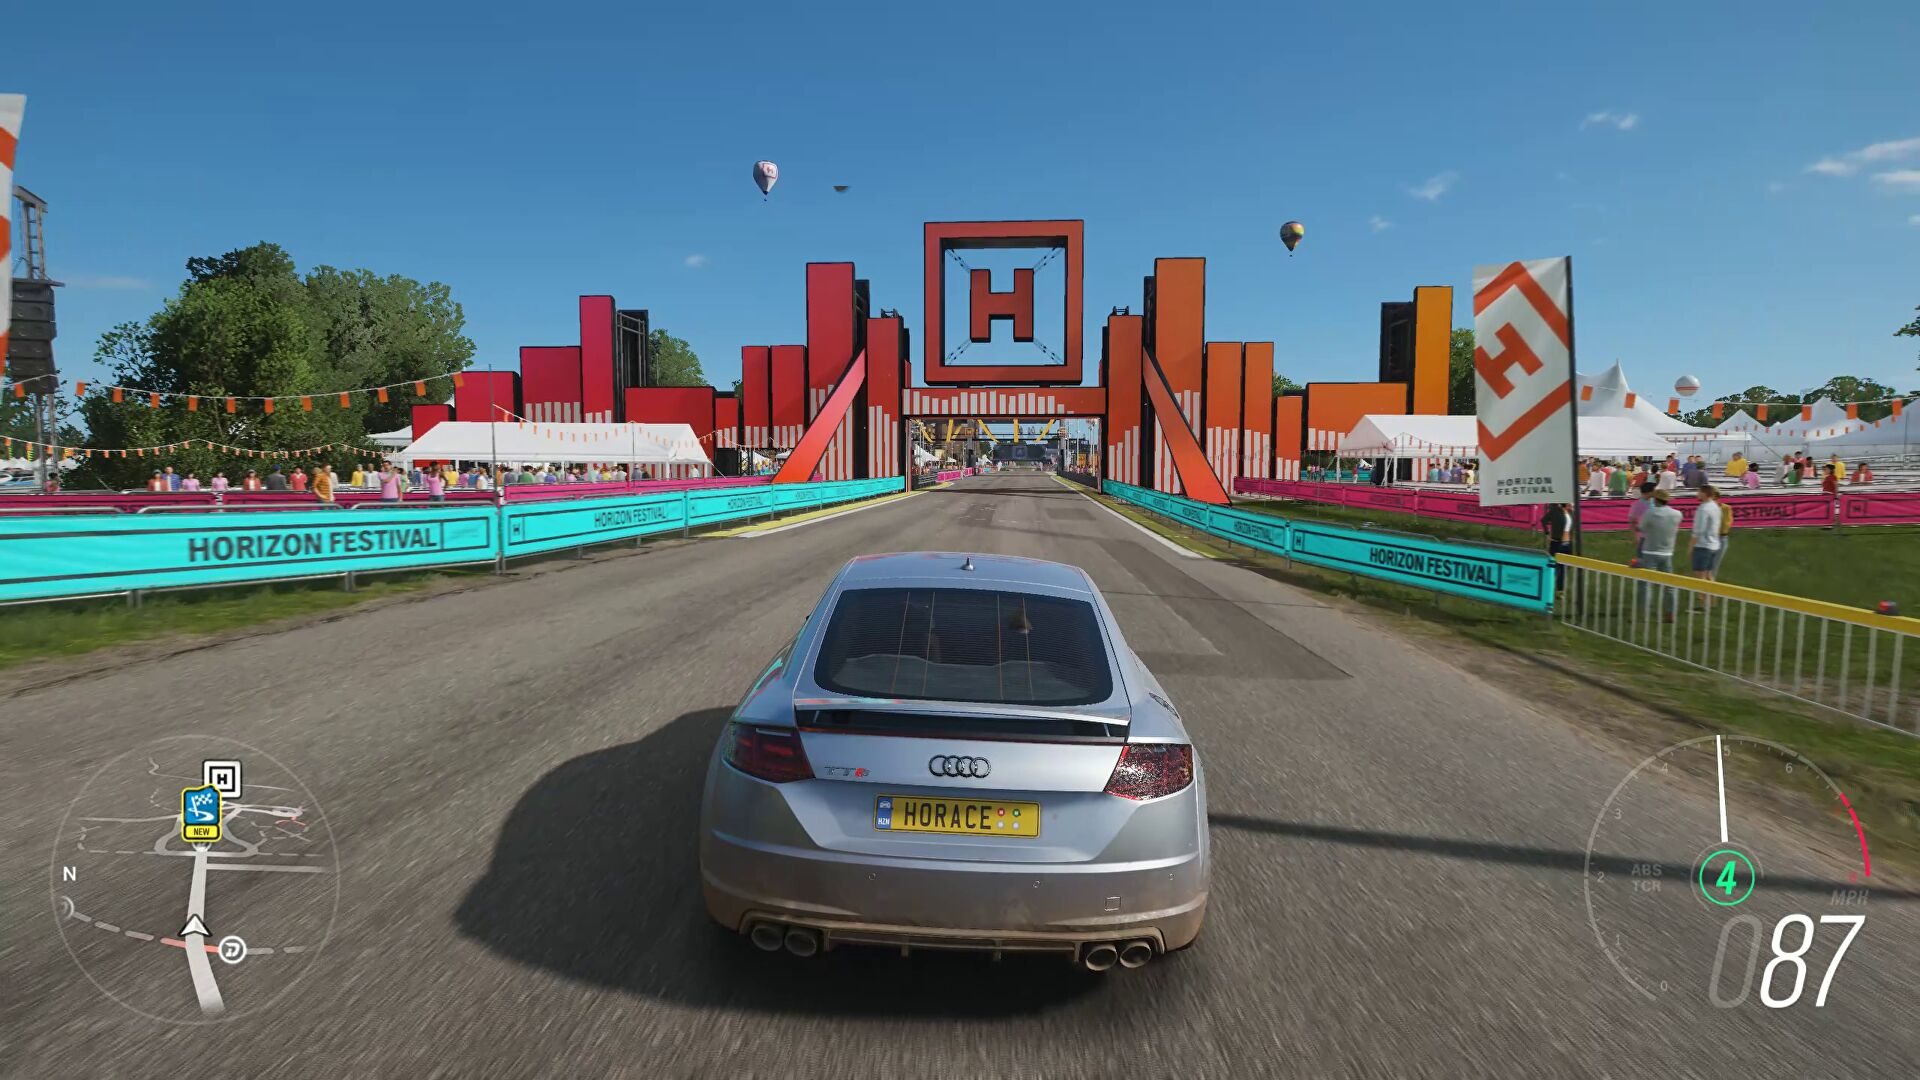 Forza Horizon 4 Graphics Performance How To Get The Best Settings On Pc Rock Paper Shotgun